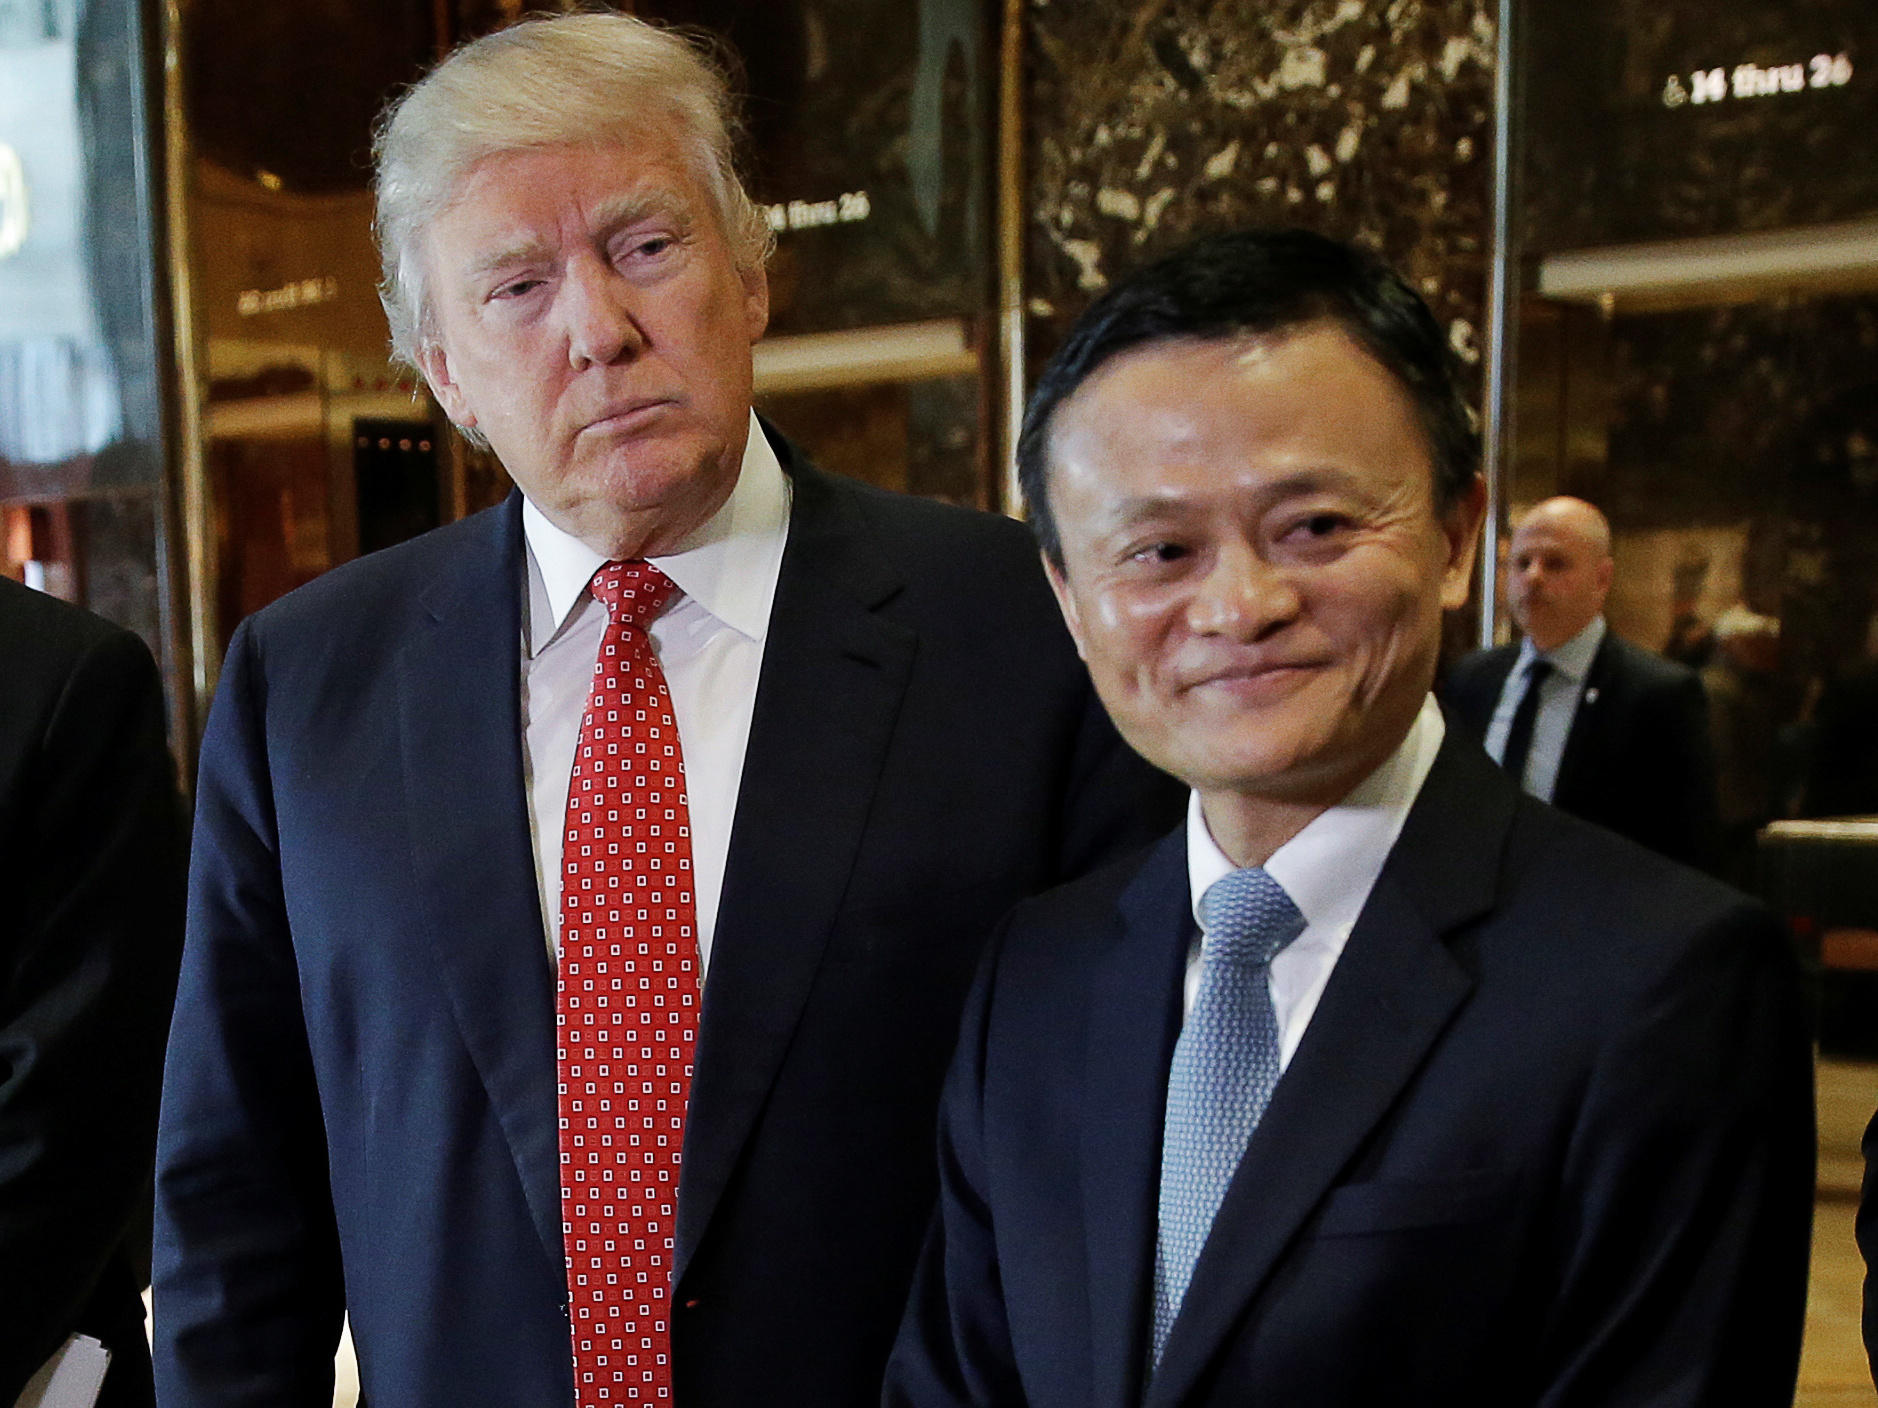 Alibaba Executive Chairman Jack Ma visited President-elect Donald Trump in January of 2017 as his company was launching an attempt to buy MoneyGram